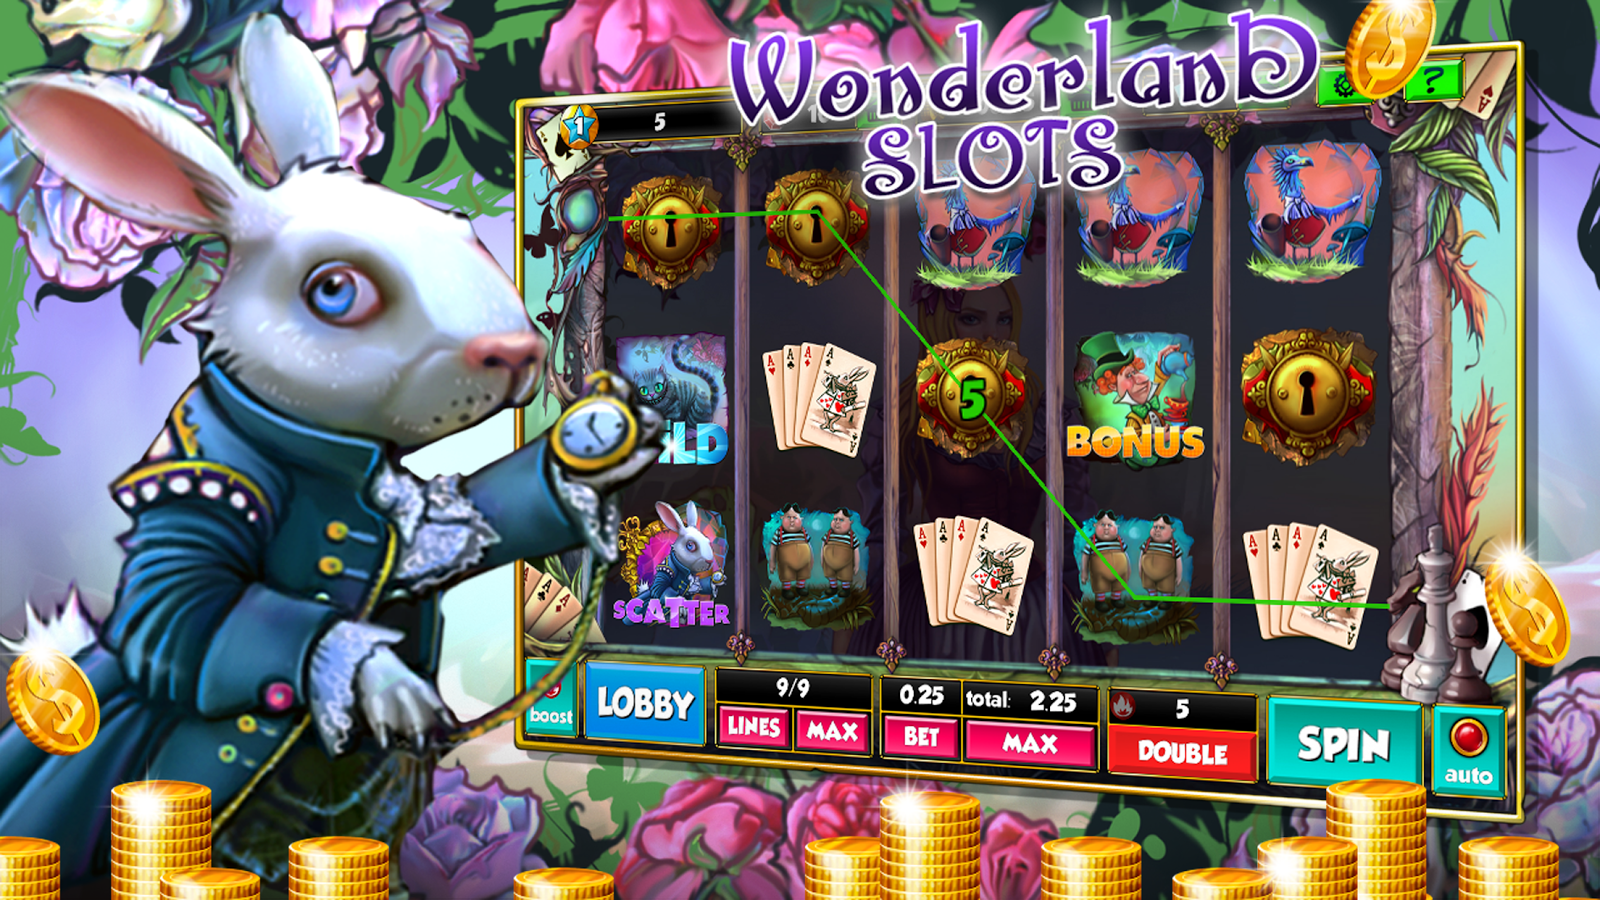 Alice in Wonderland Slot Machine - Read the Review Now